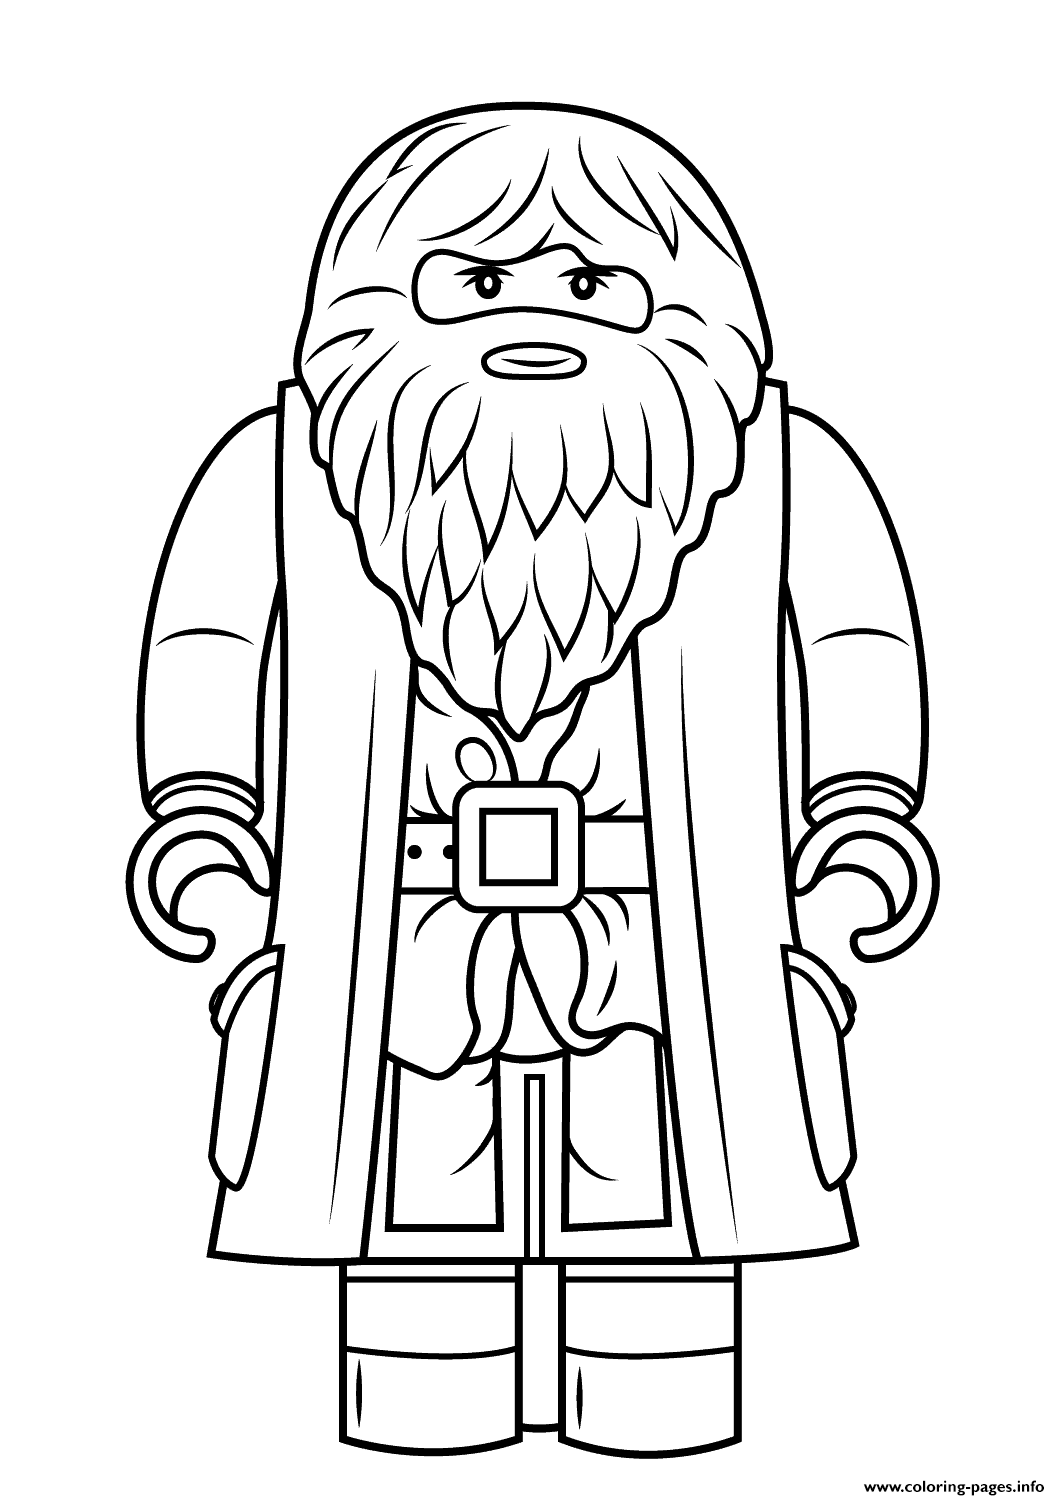 Print lego rubeus hagrid minifigure harry potter coloring pages